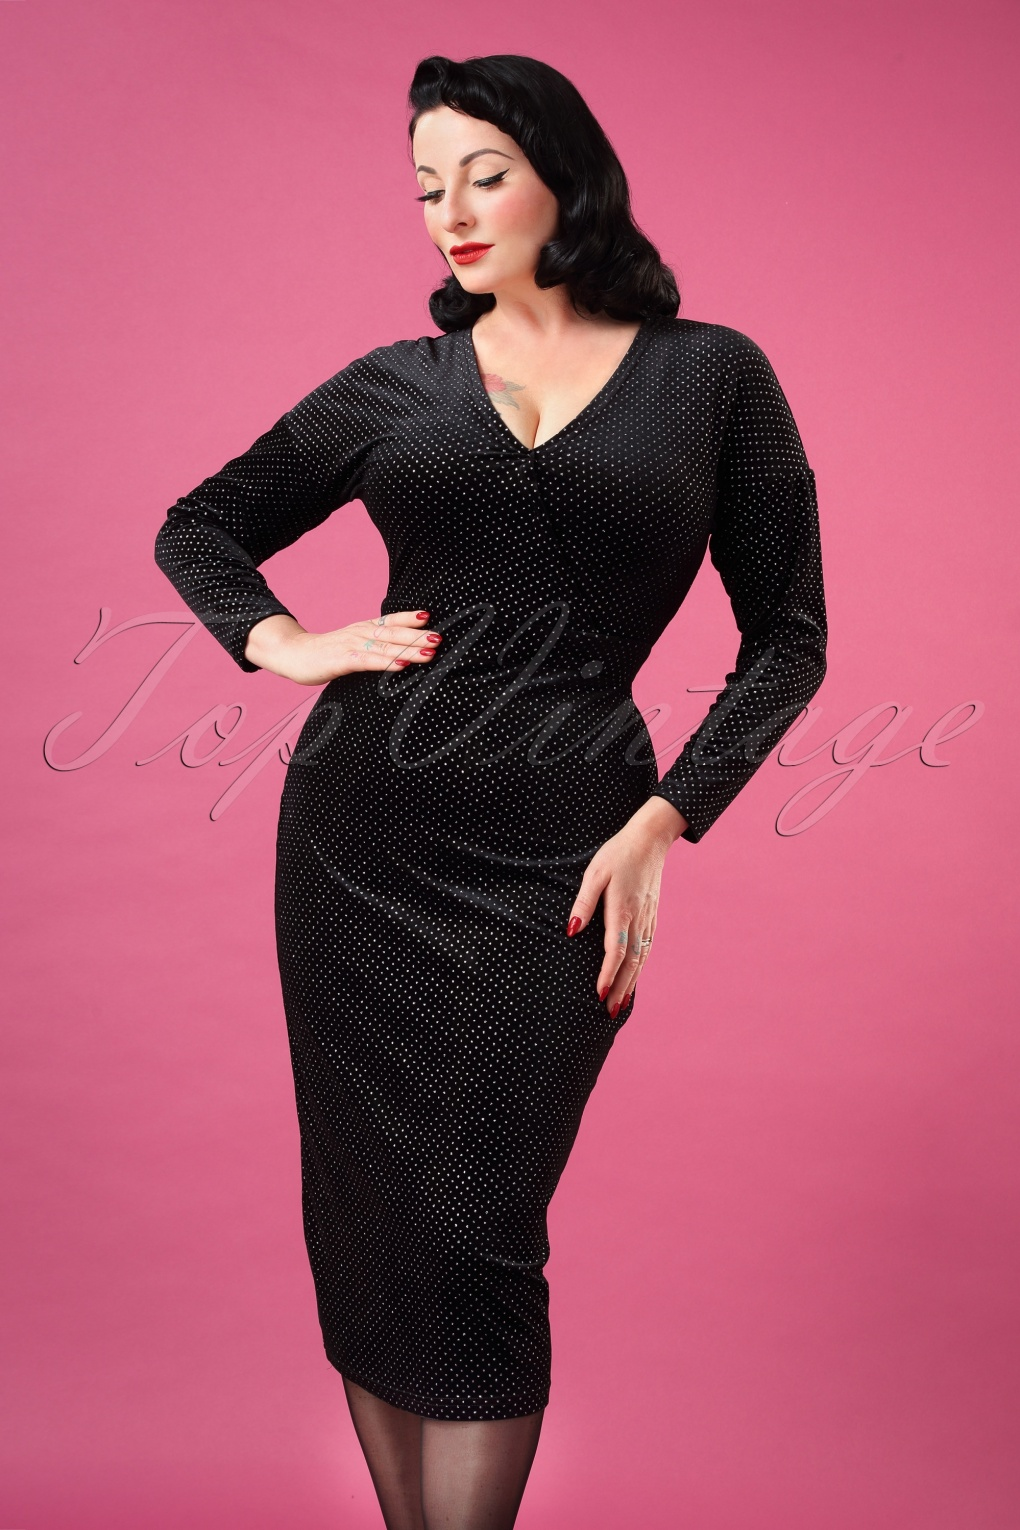 50s Dresses UK | 1950s Dresses, Shoes & Clothing Shops 50s Metal Polka Velvet Pencil Dress in Black £39.16 AT vintagedancer.com